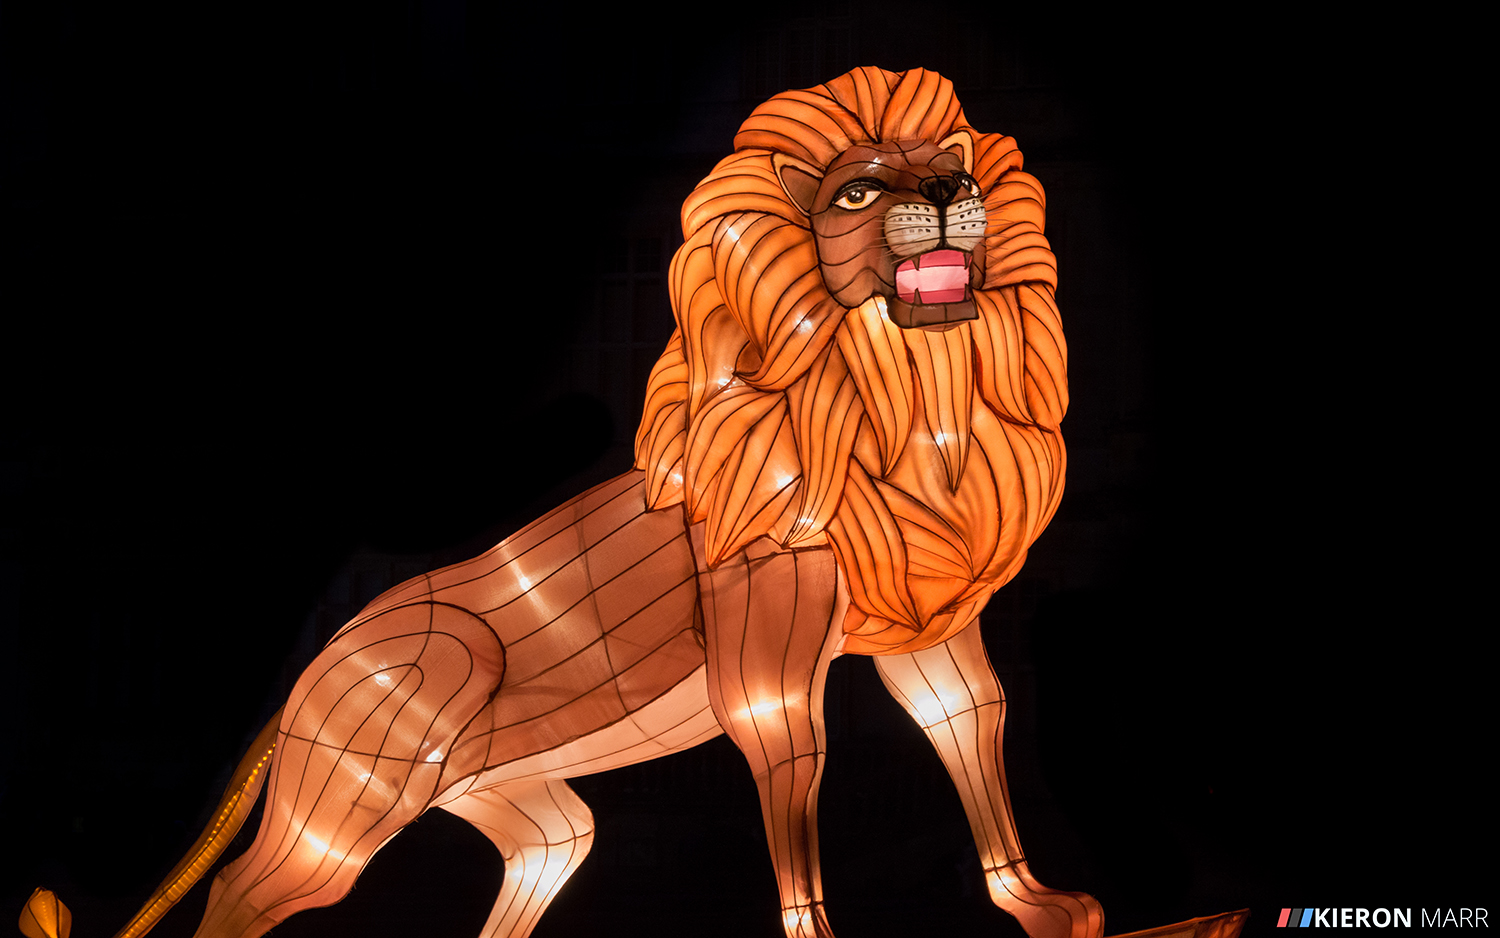 Longleat Festival of Light 2014 - Lion